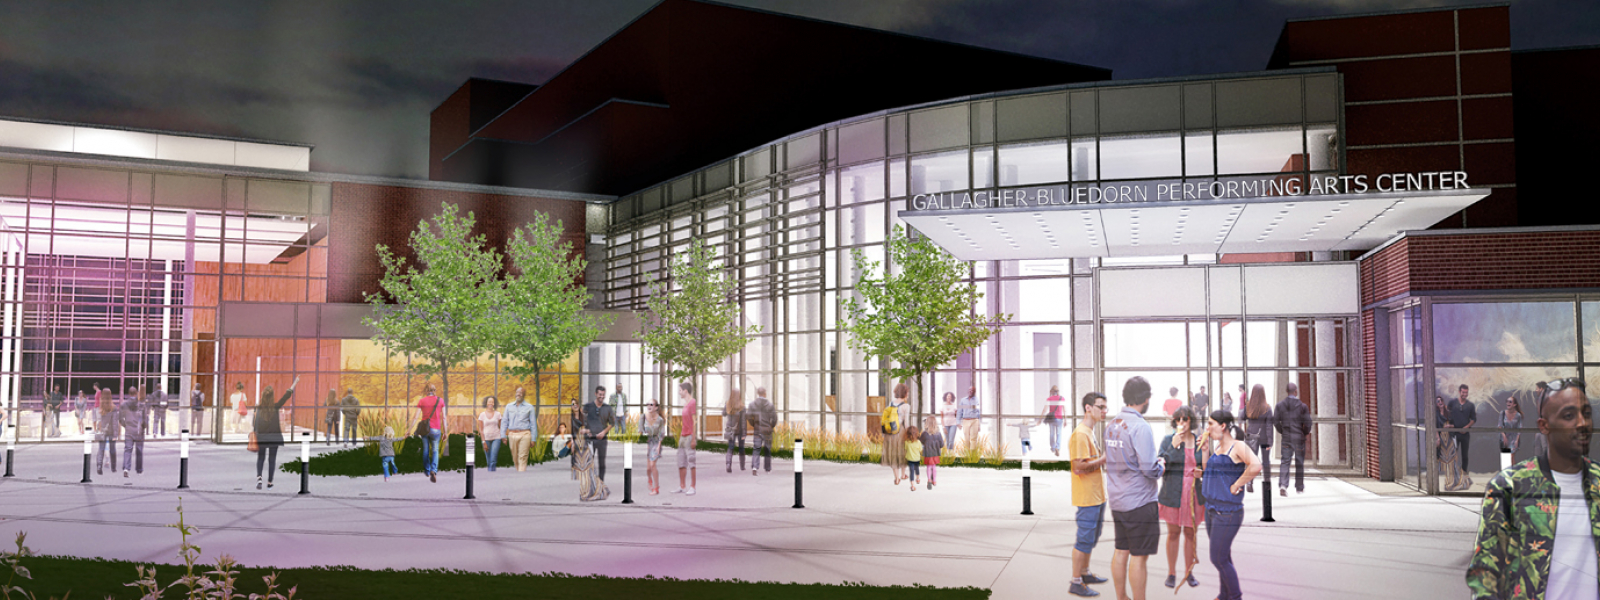 A rendering of the Gallagher Bluedorn Performing Arts Center renovation